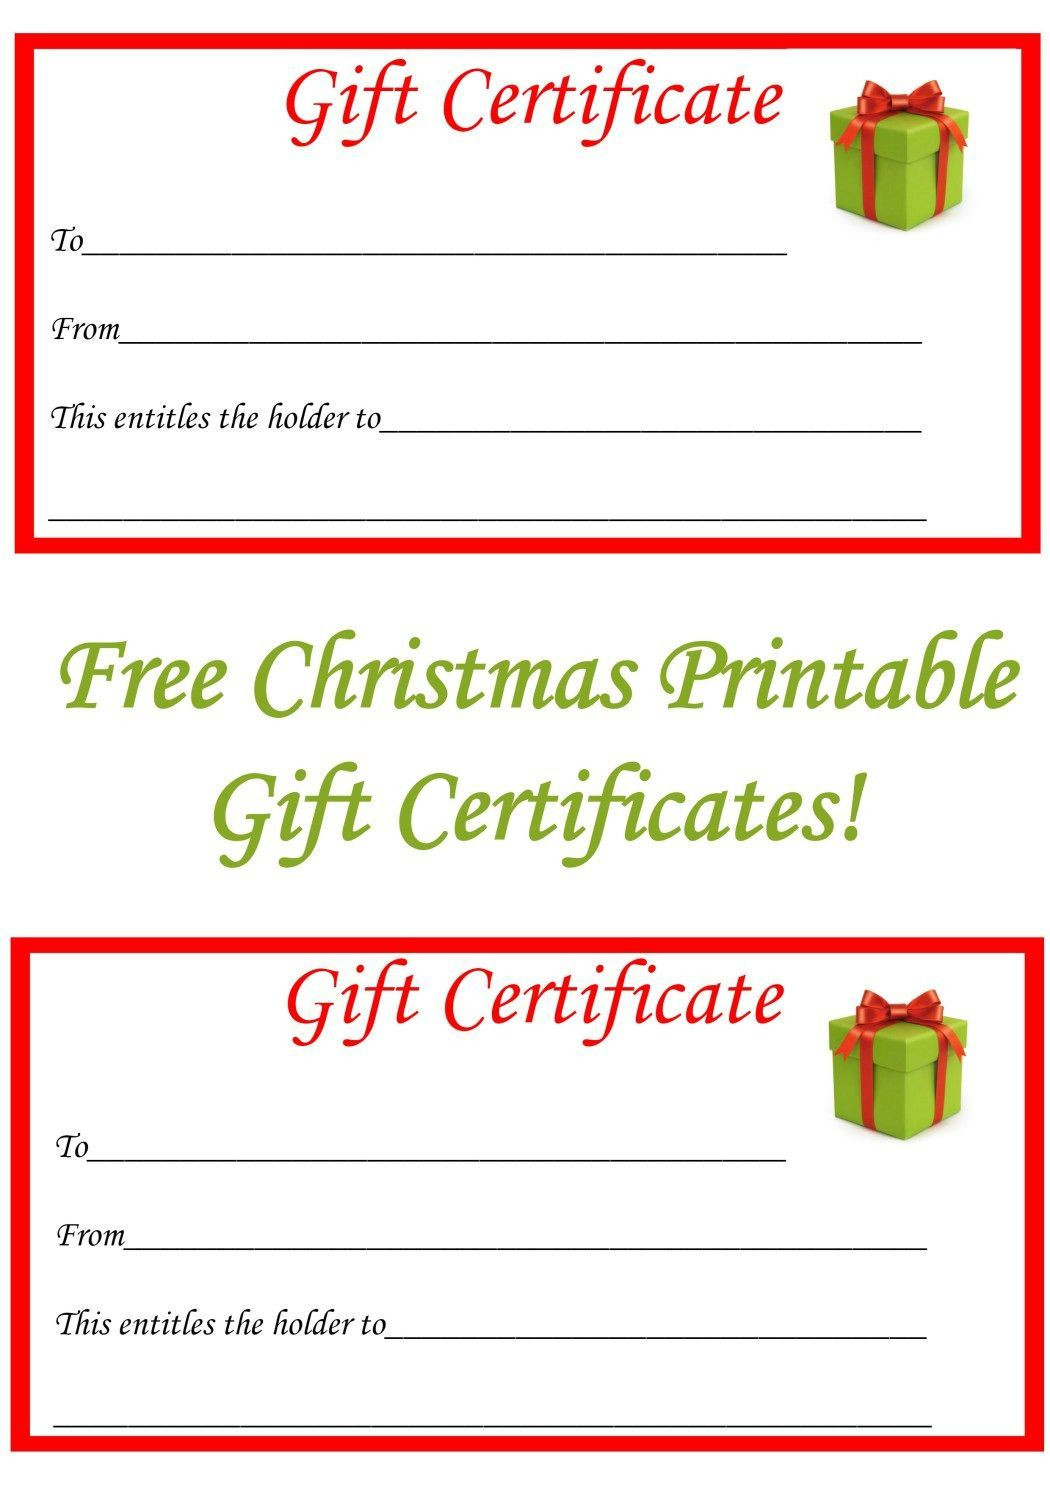 The extraordinary Free Christmas Printable Gift Certificates